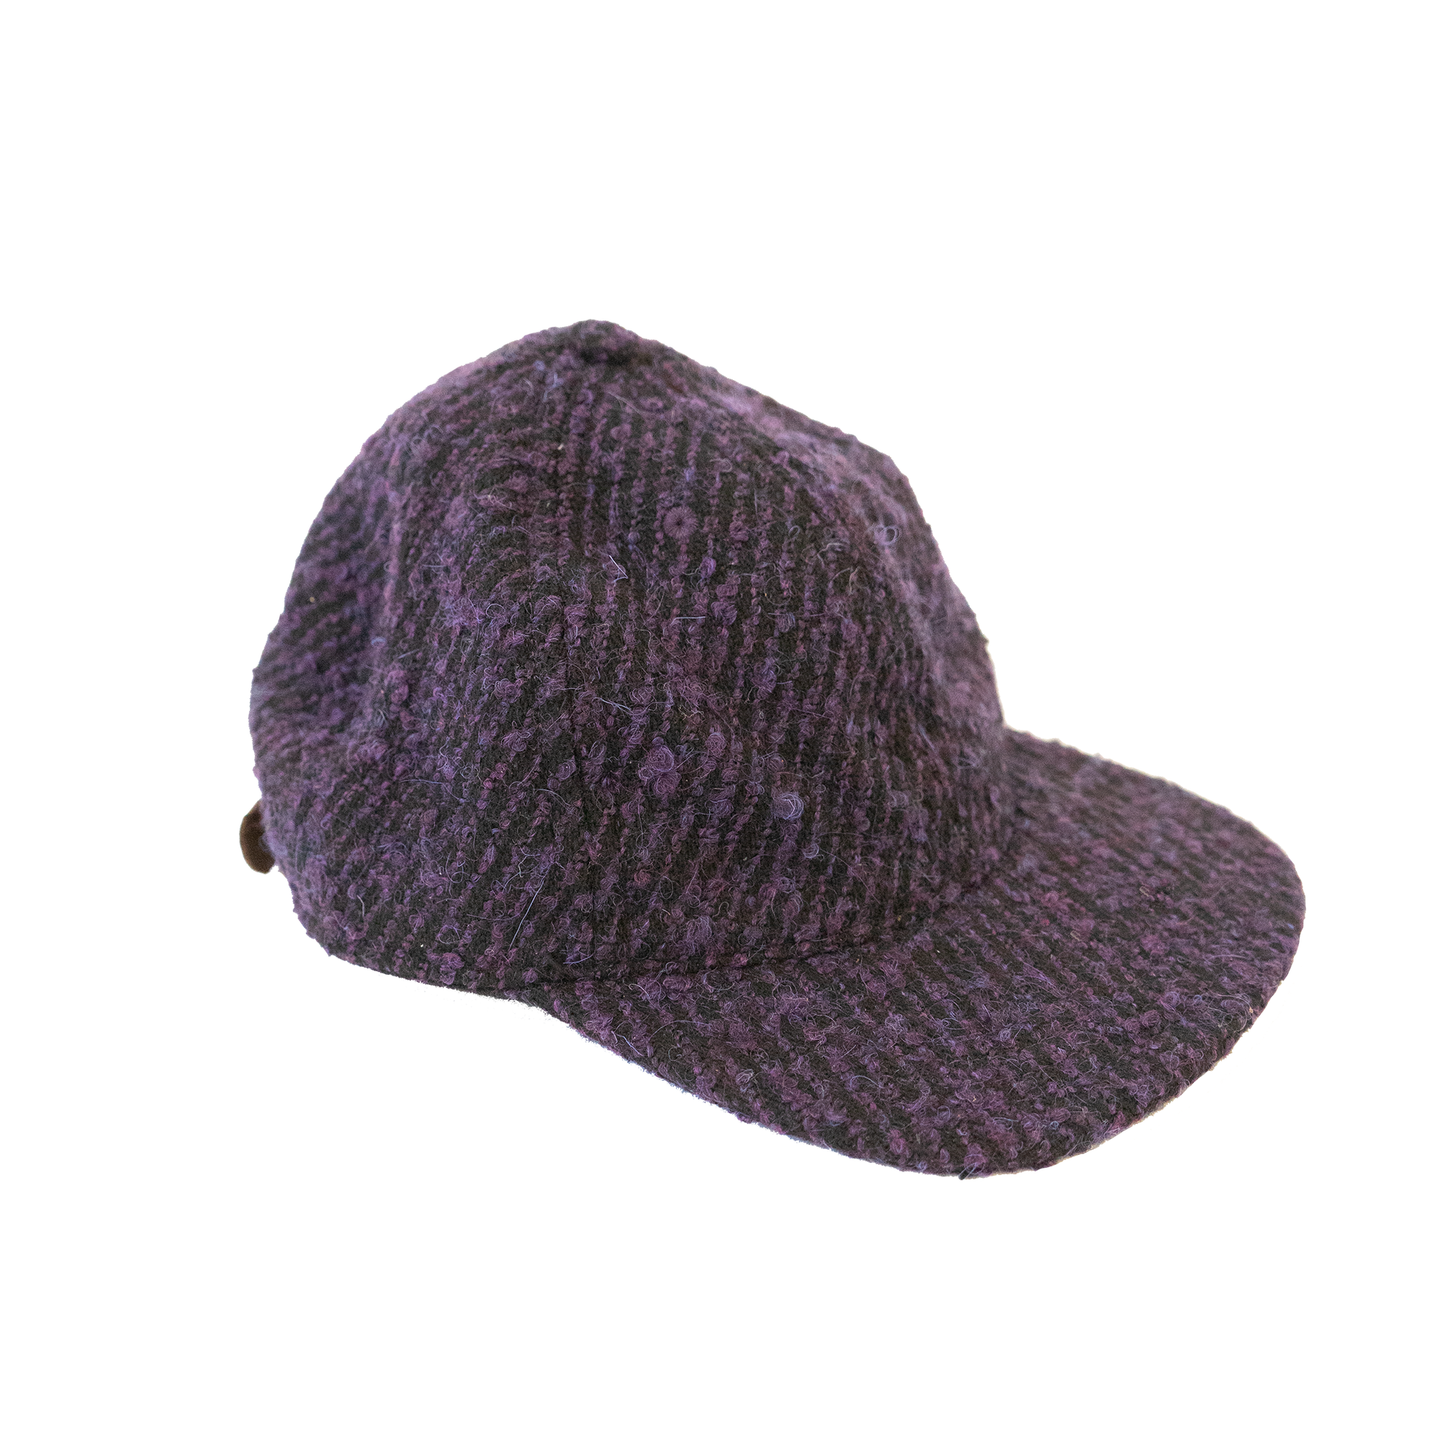 Adjustable Cap in Black & Purple Wool